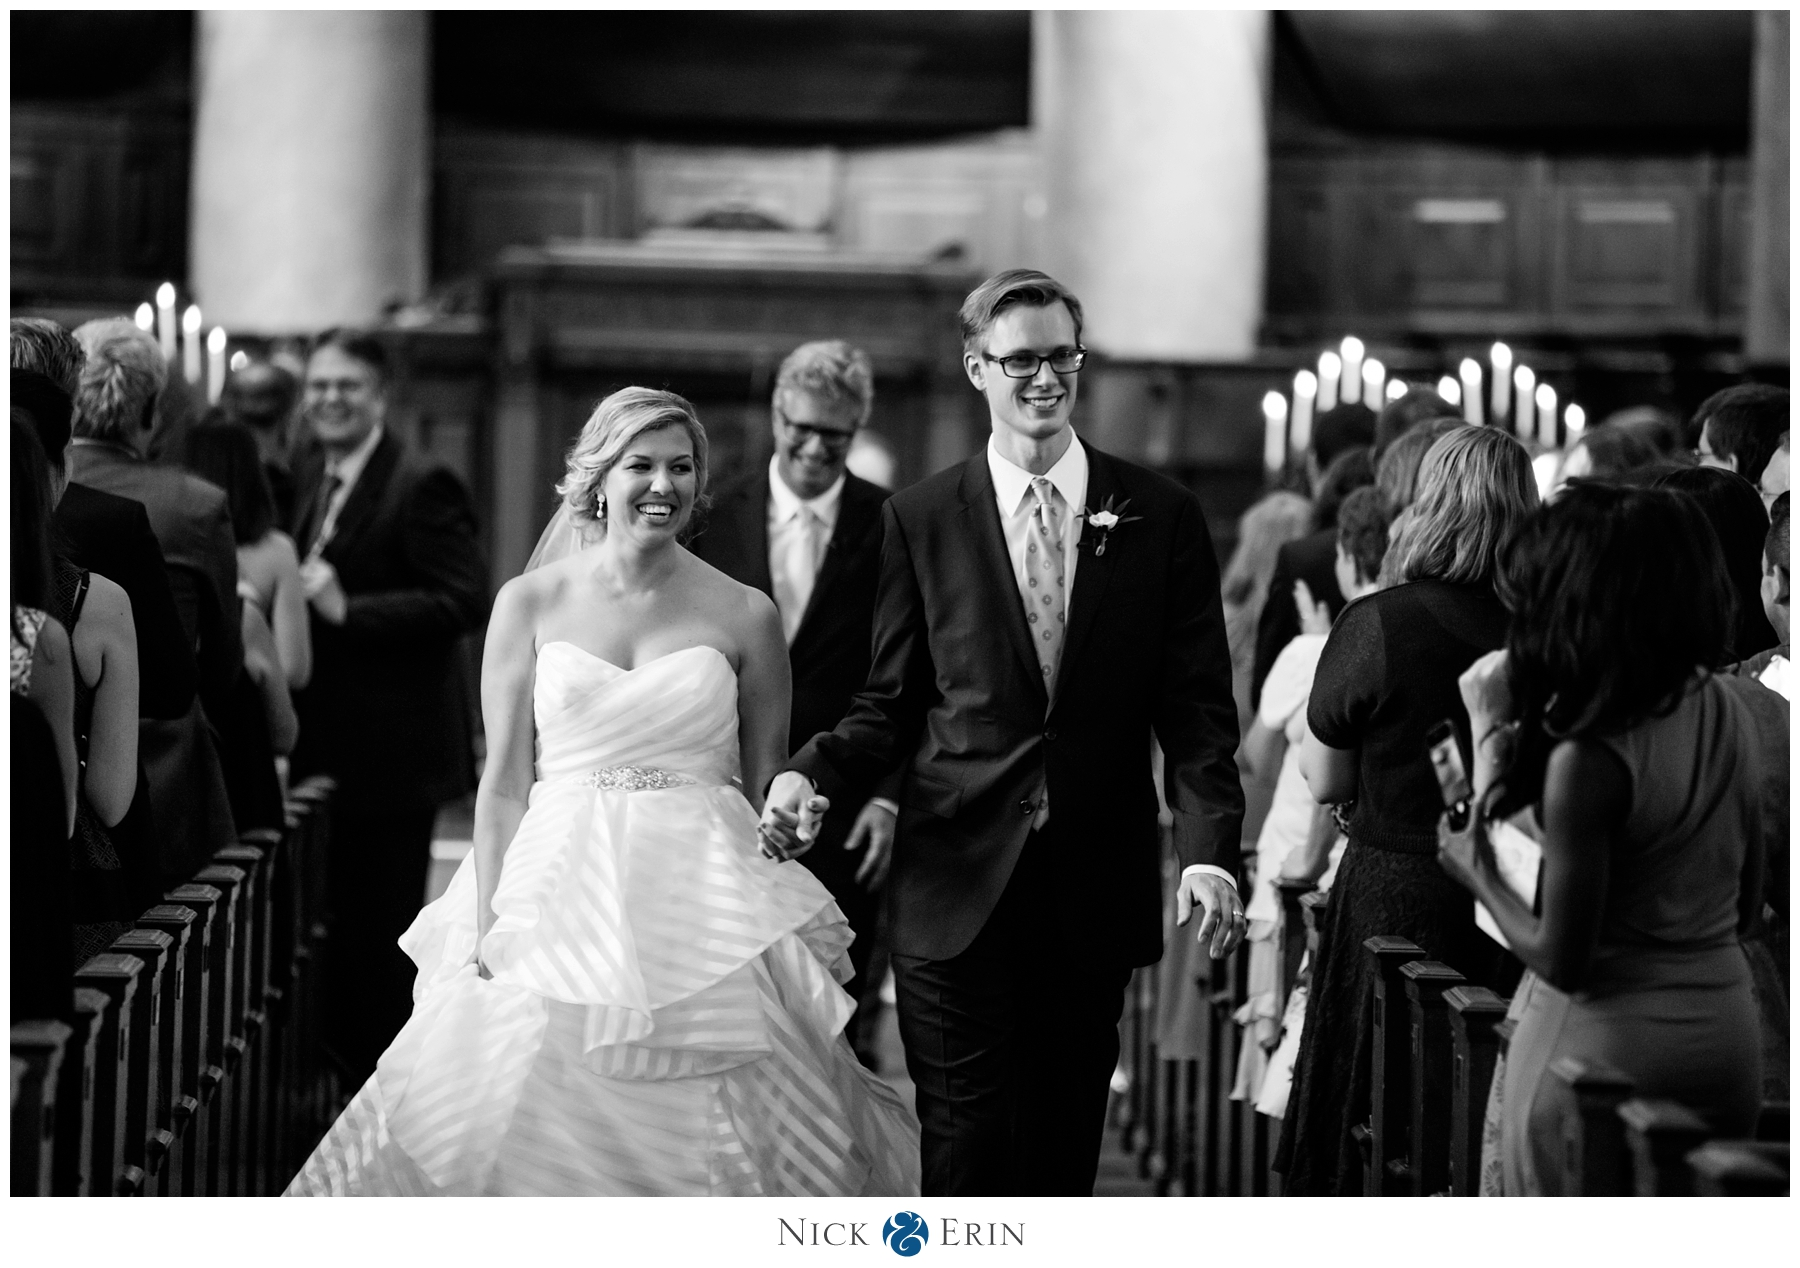 Donner_Photography_Washington DC Wedding_Rachel & Taylor_0040